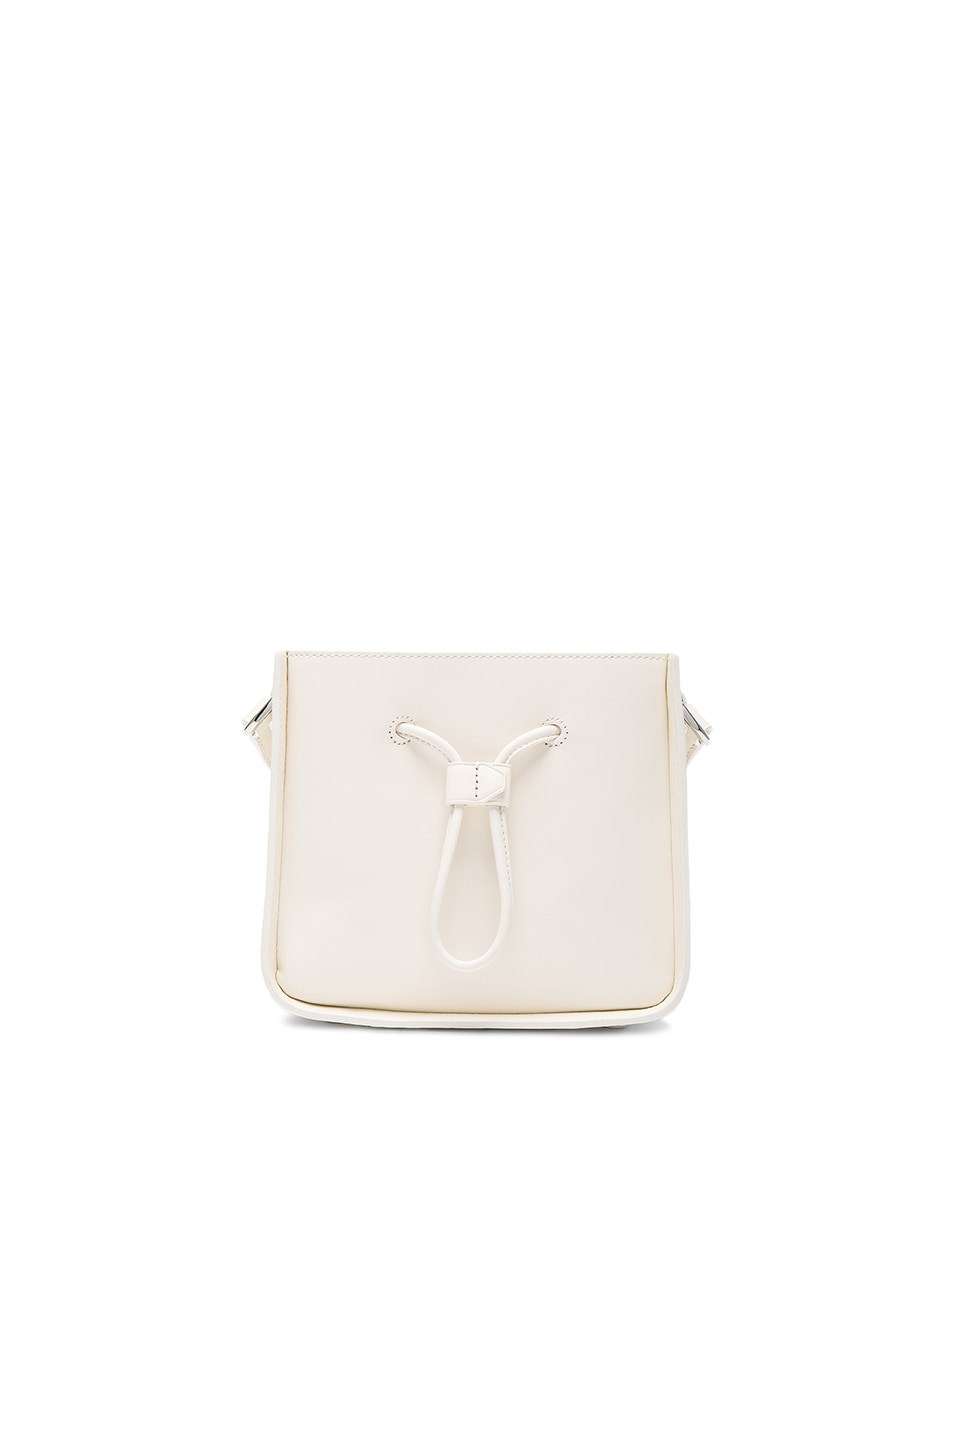 Image 1 of 3.1 phillip lim Soleil Mini Bucket Drawstring Bag in Off White